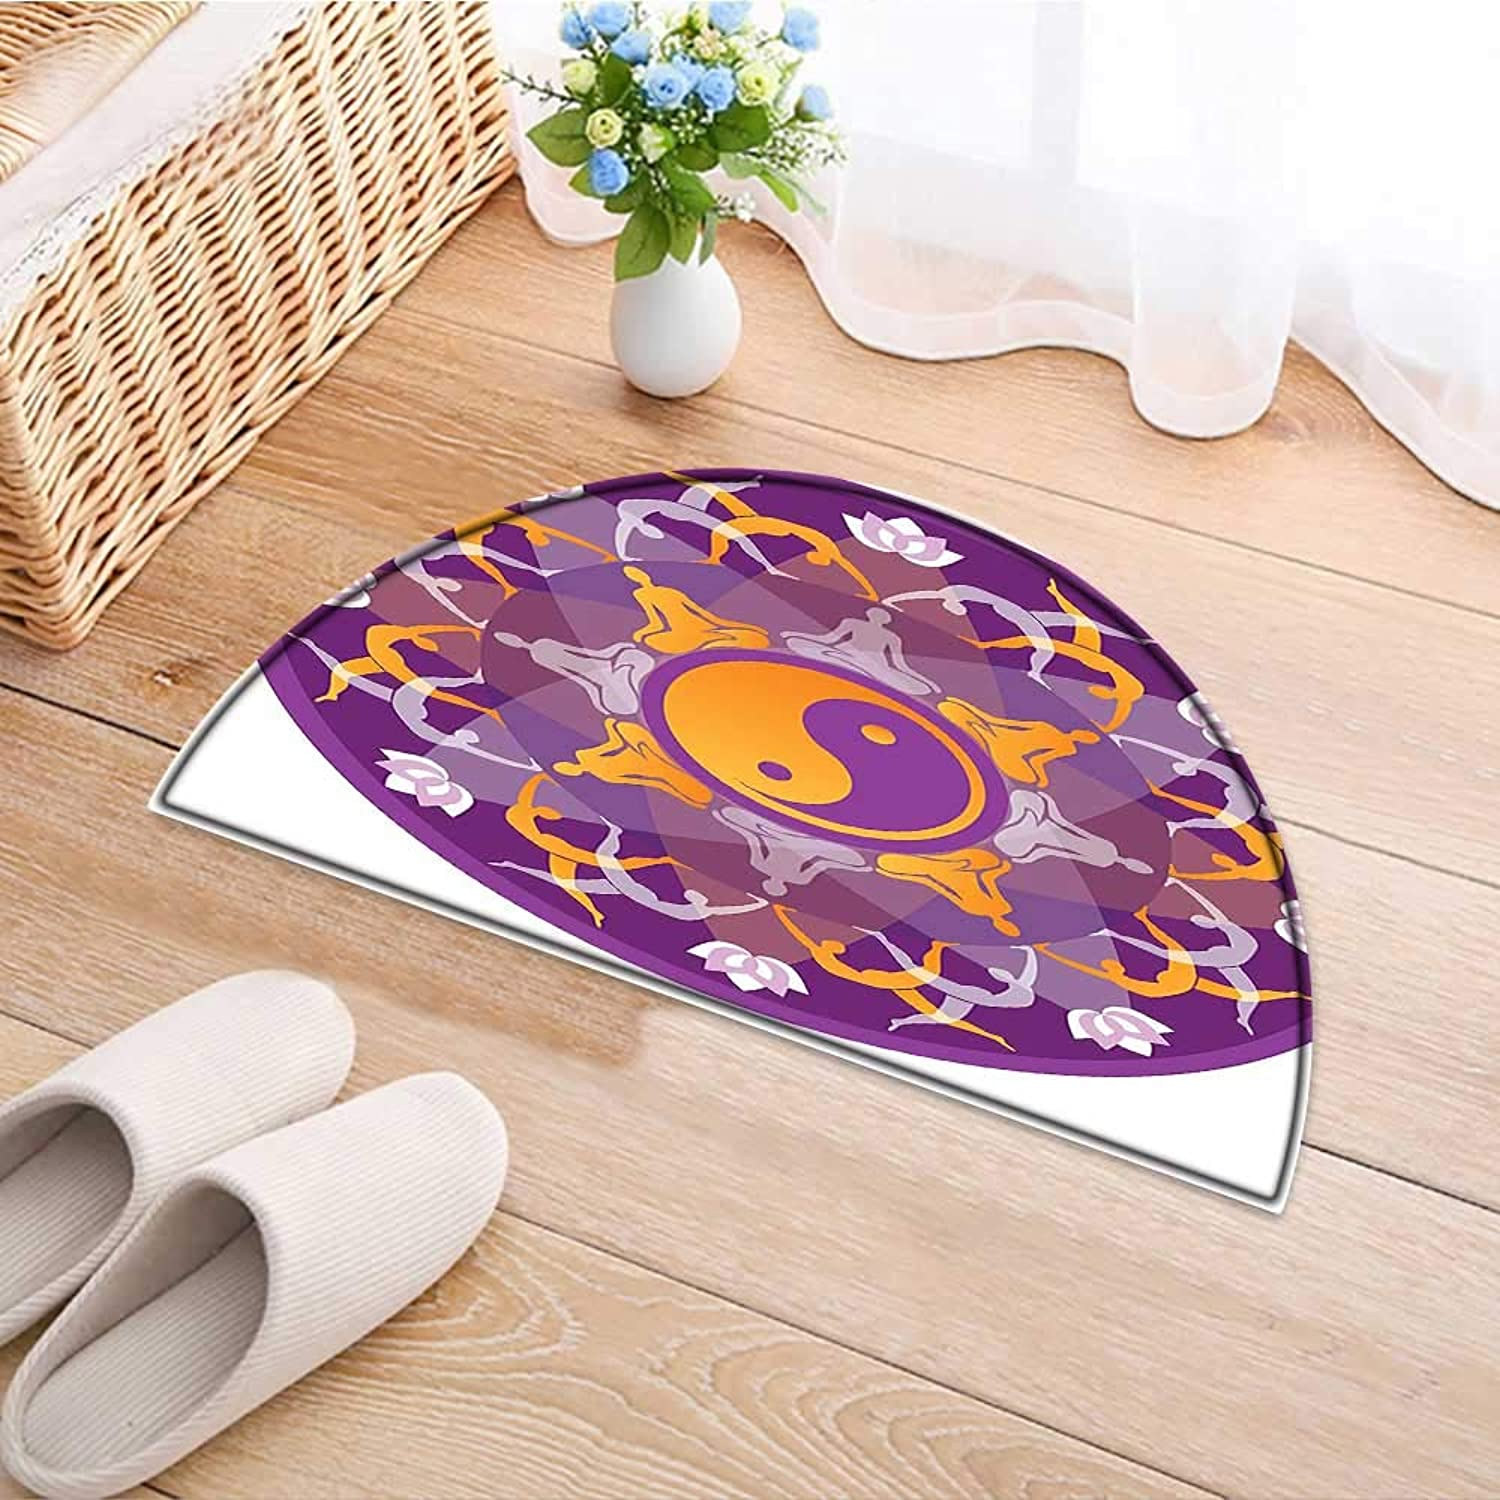 Print Area Rug Mandala Background with Yoga Symbols and Positions Yin Yang Zen Meditation Pattern Purple Perfect for Any Room, Floor Carpet W43 x H30 INCH